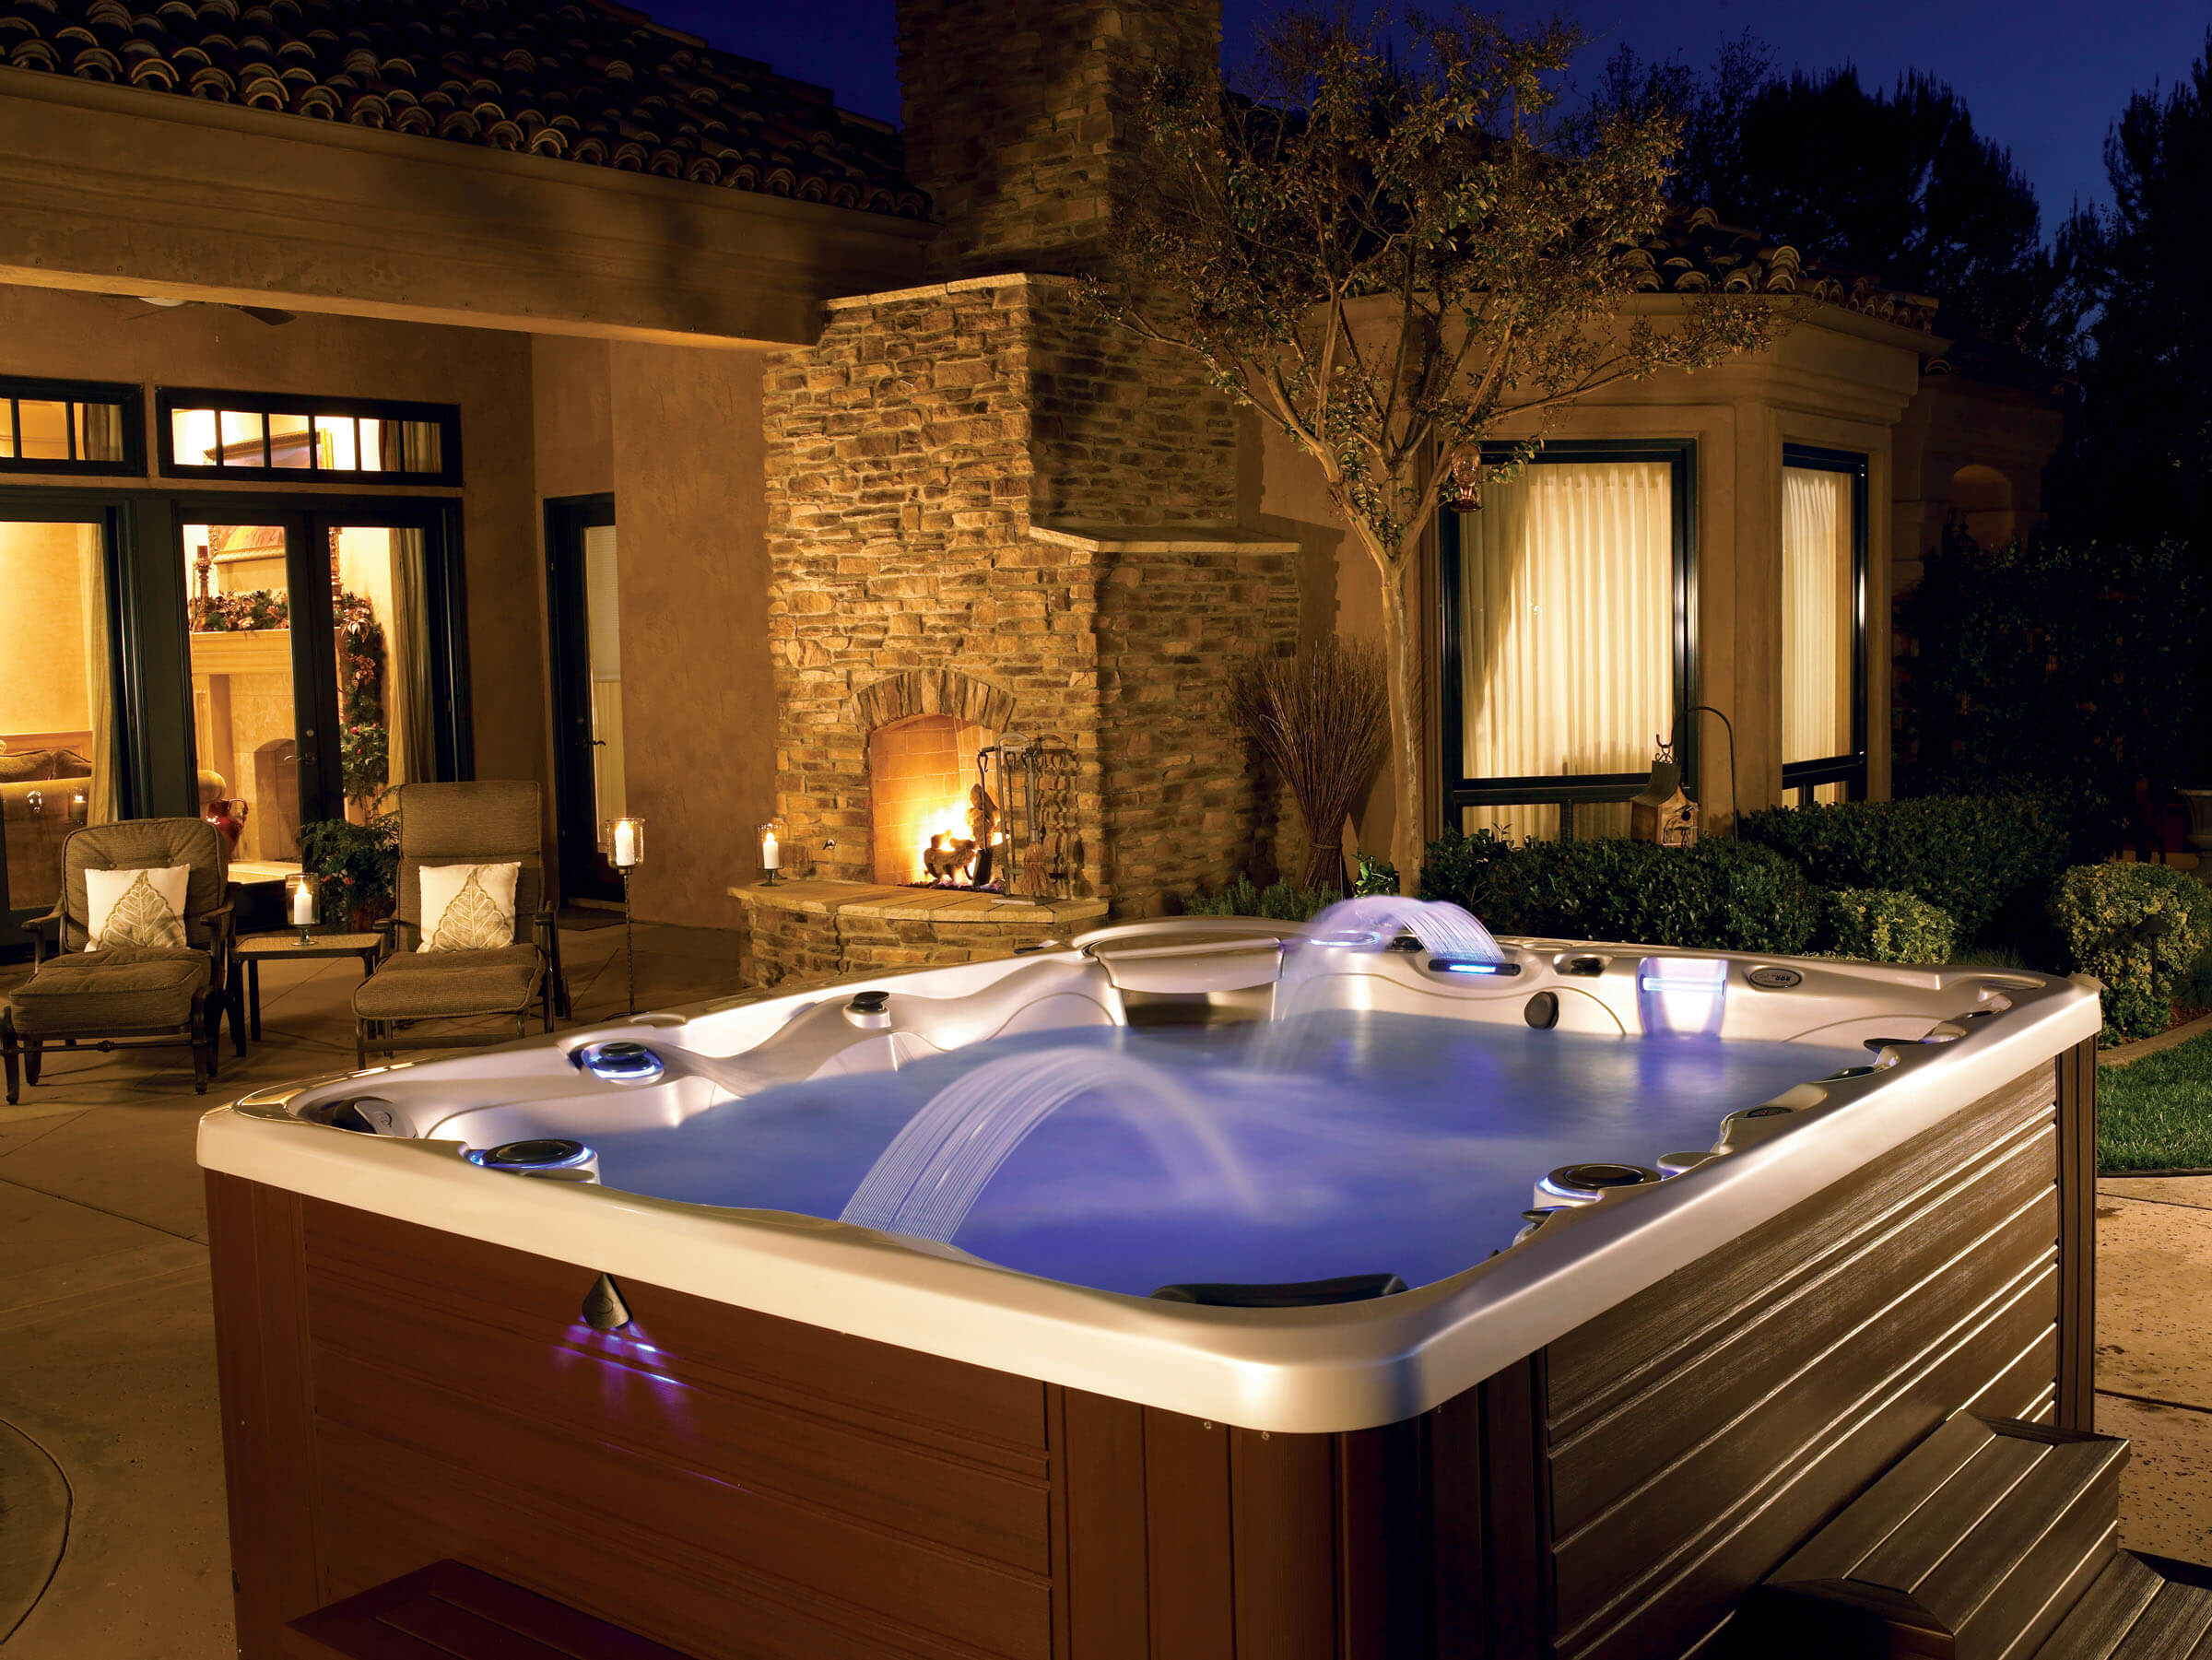 jacuzzi jaccut dealer tub tubs hot store orlando sales spas